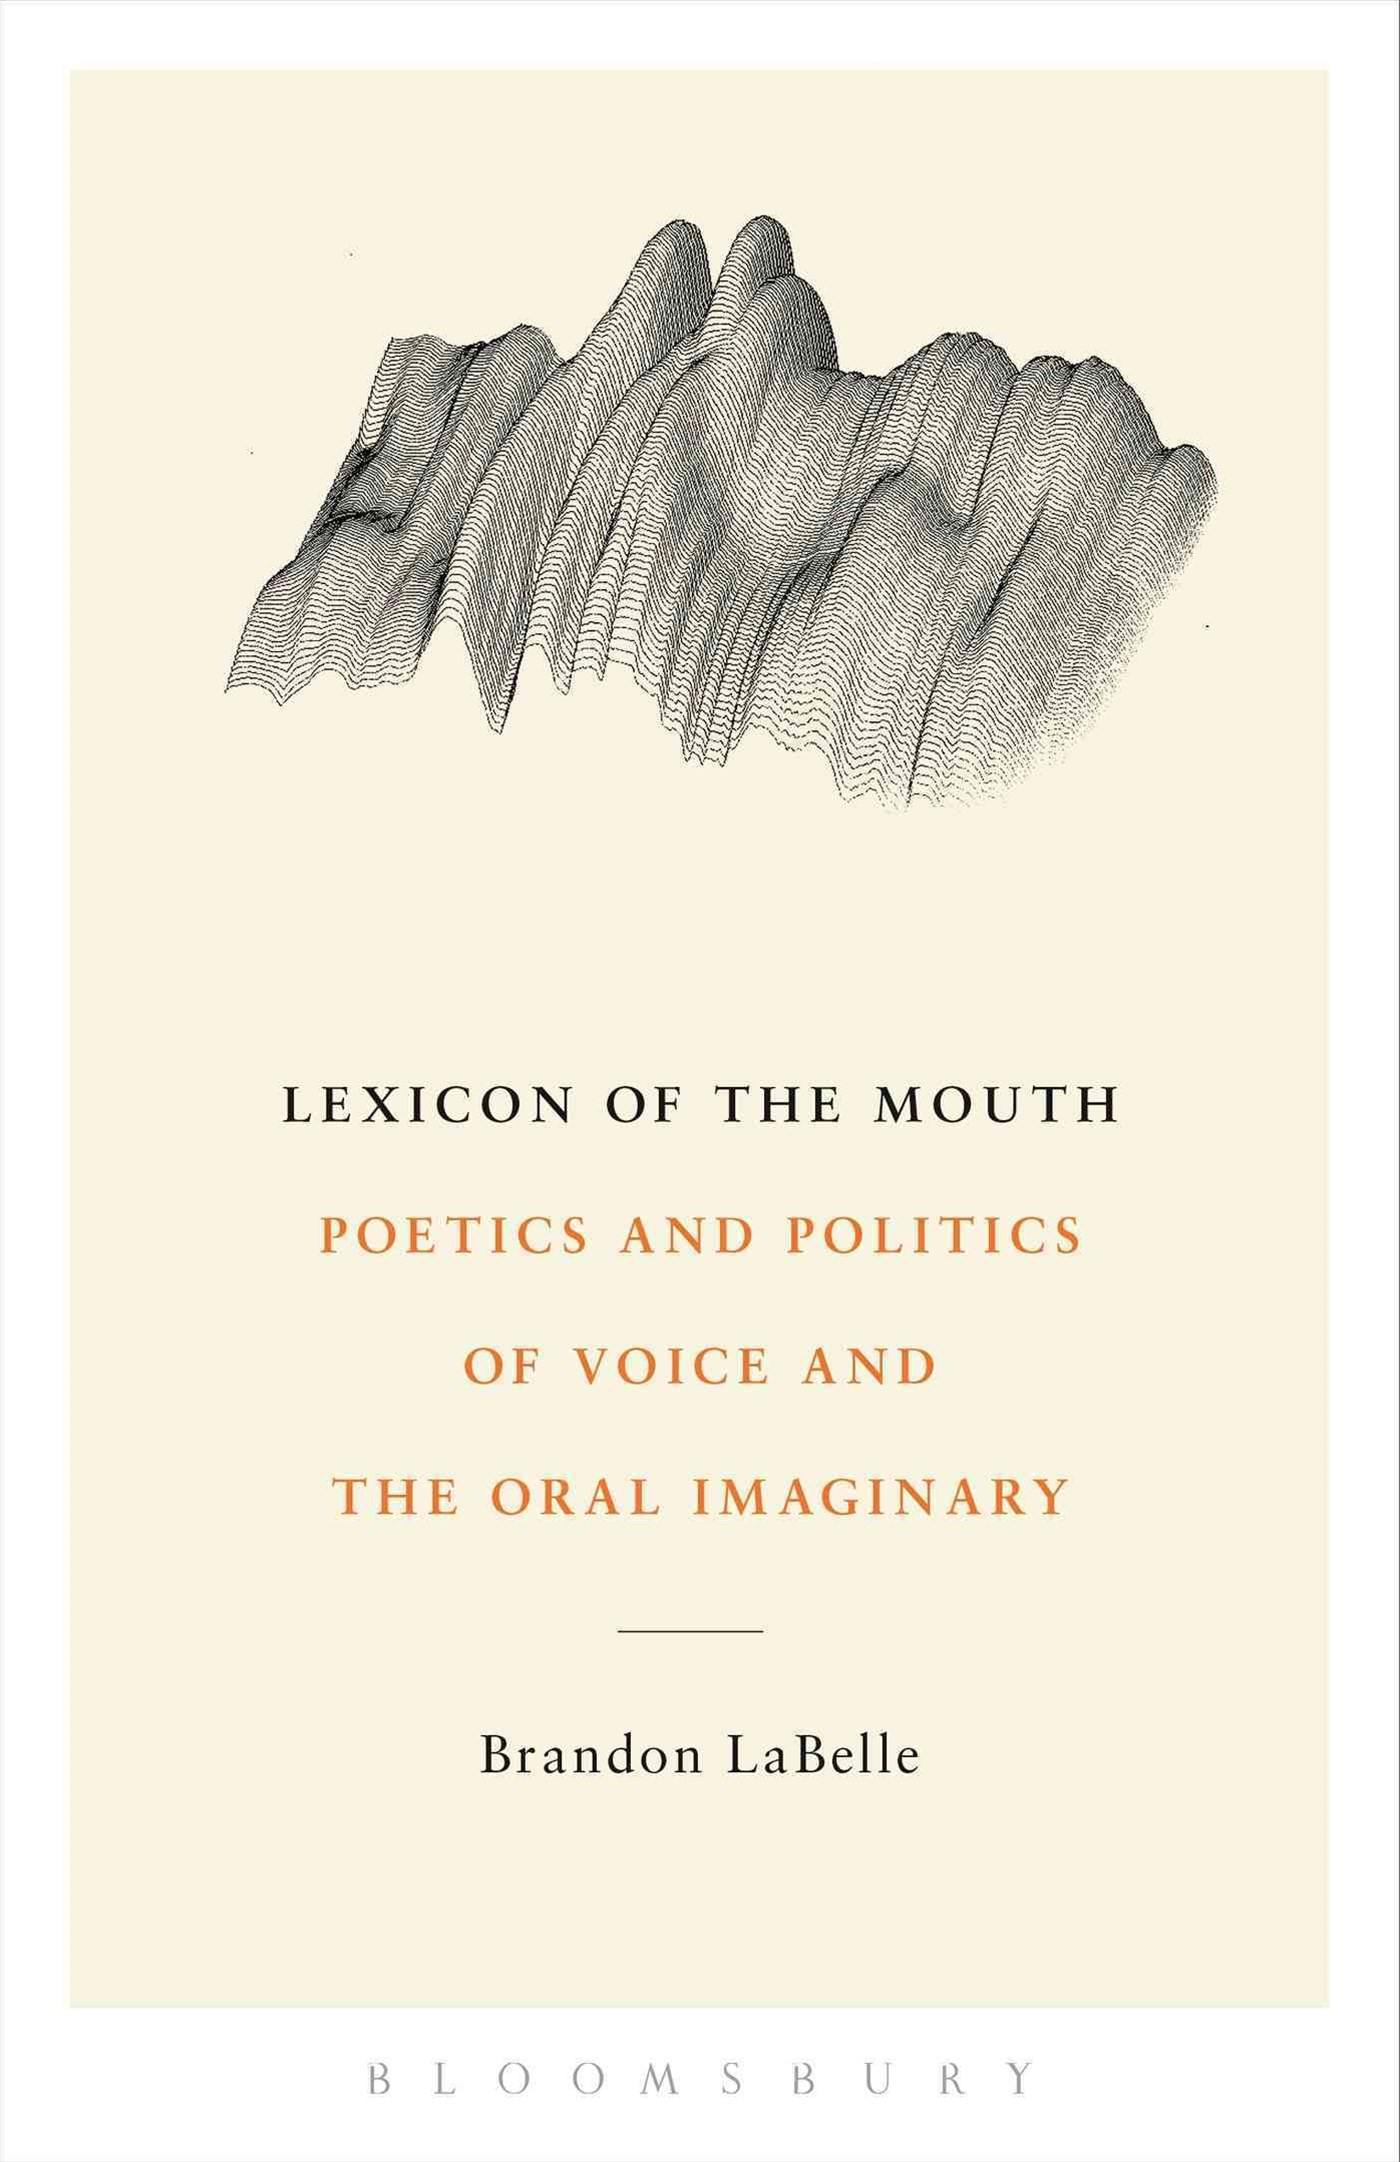 Lexicon of the Mouth